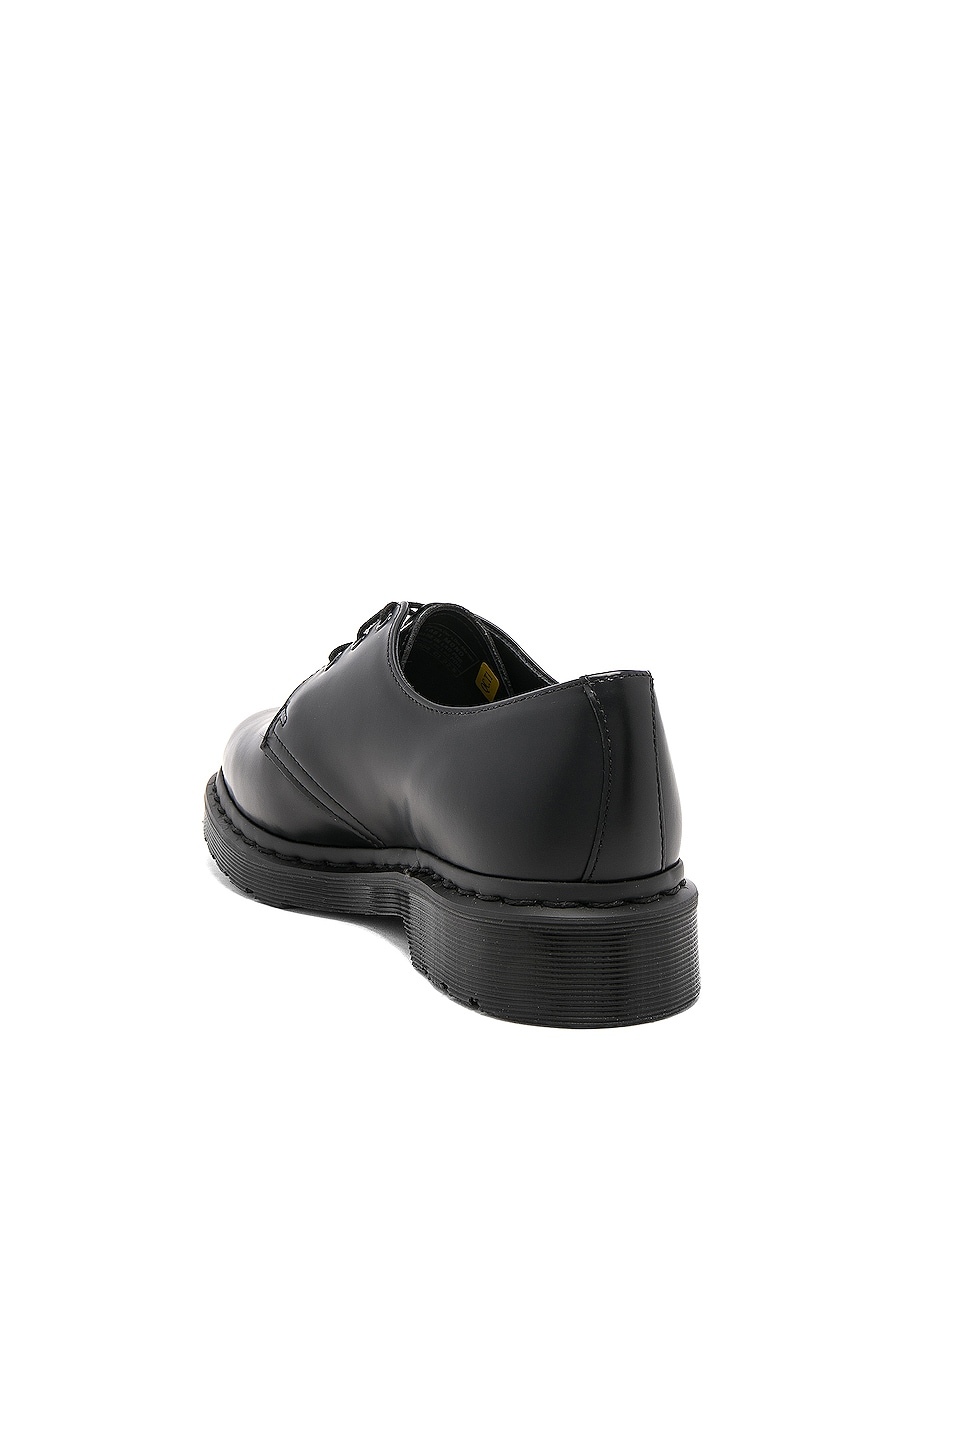 Image 3 of Dr. Martens 1461 3 Eye Gibson in Black Mono